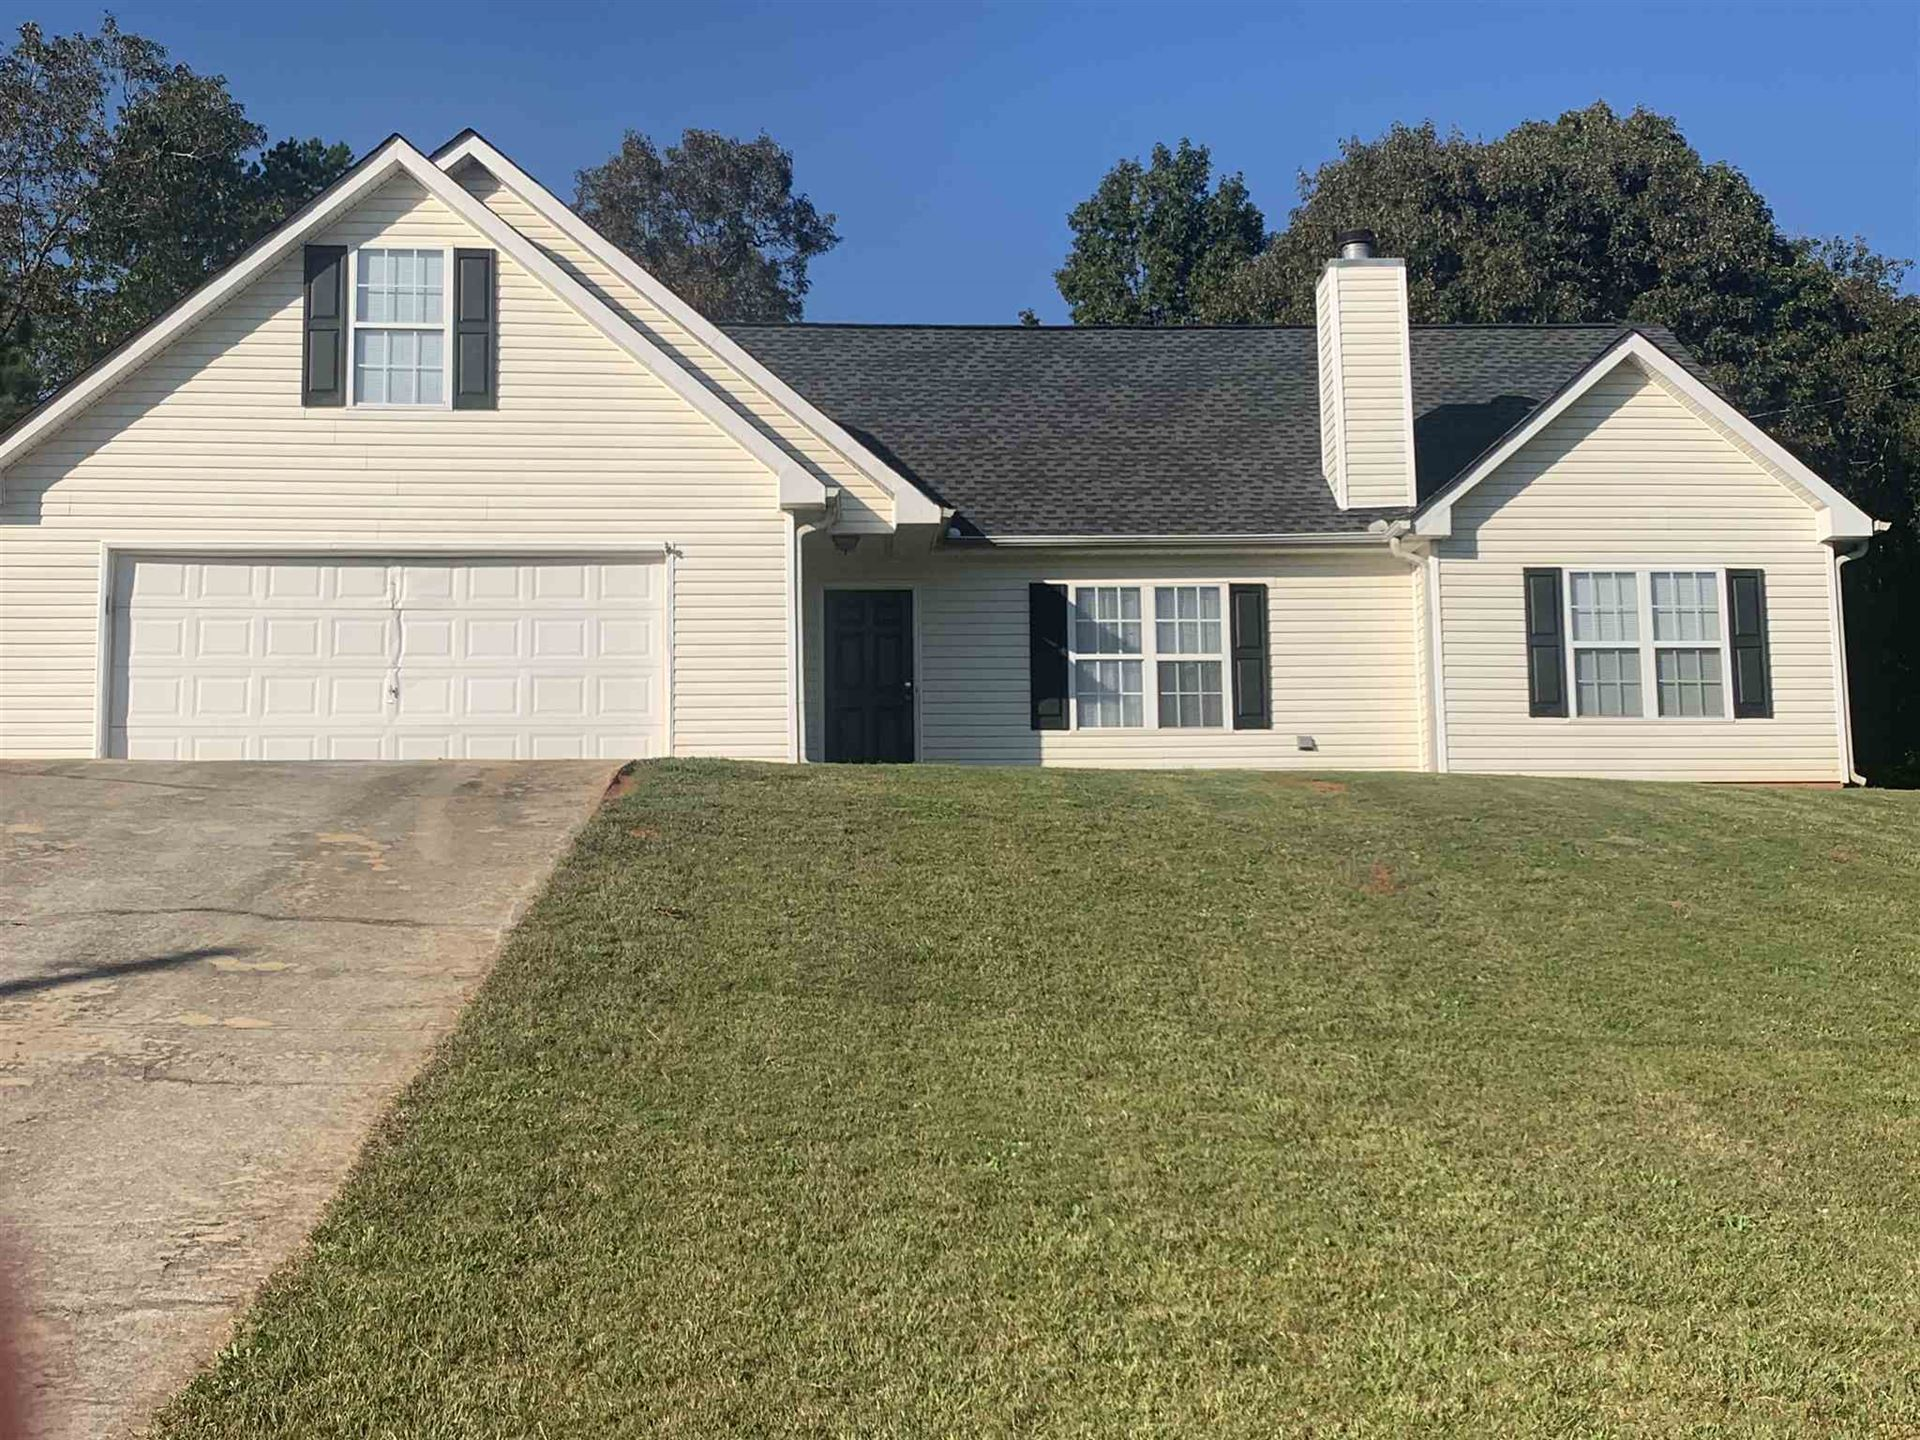 487 Old Tree Dr, Jackson, GA 30233 - #: 8875399